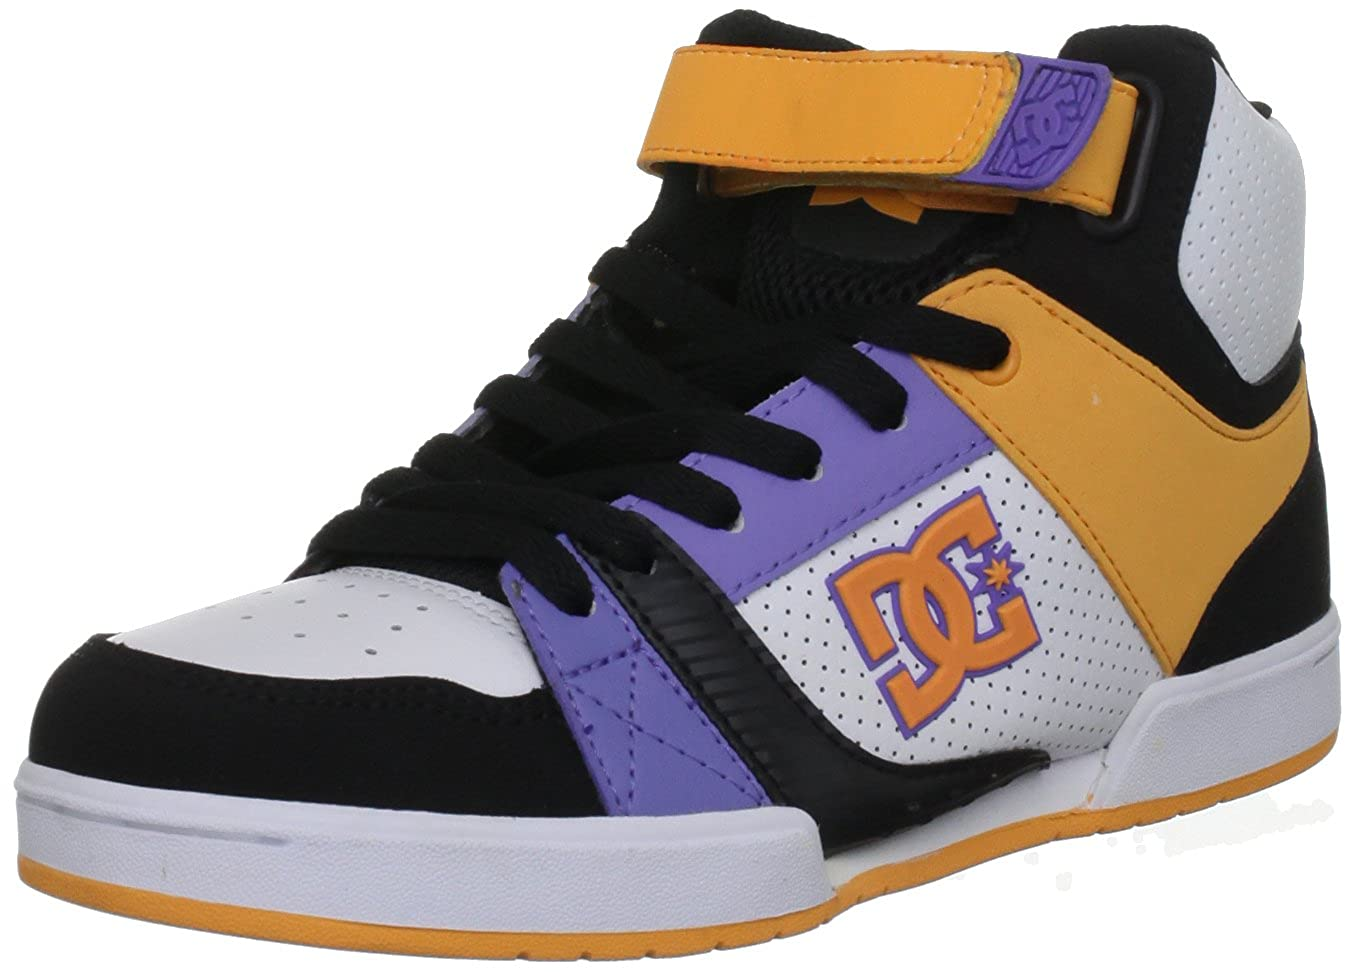 DC Shoes Ctas Speciality, baskets - skateboard femme DC Shoes Ctas Speciality